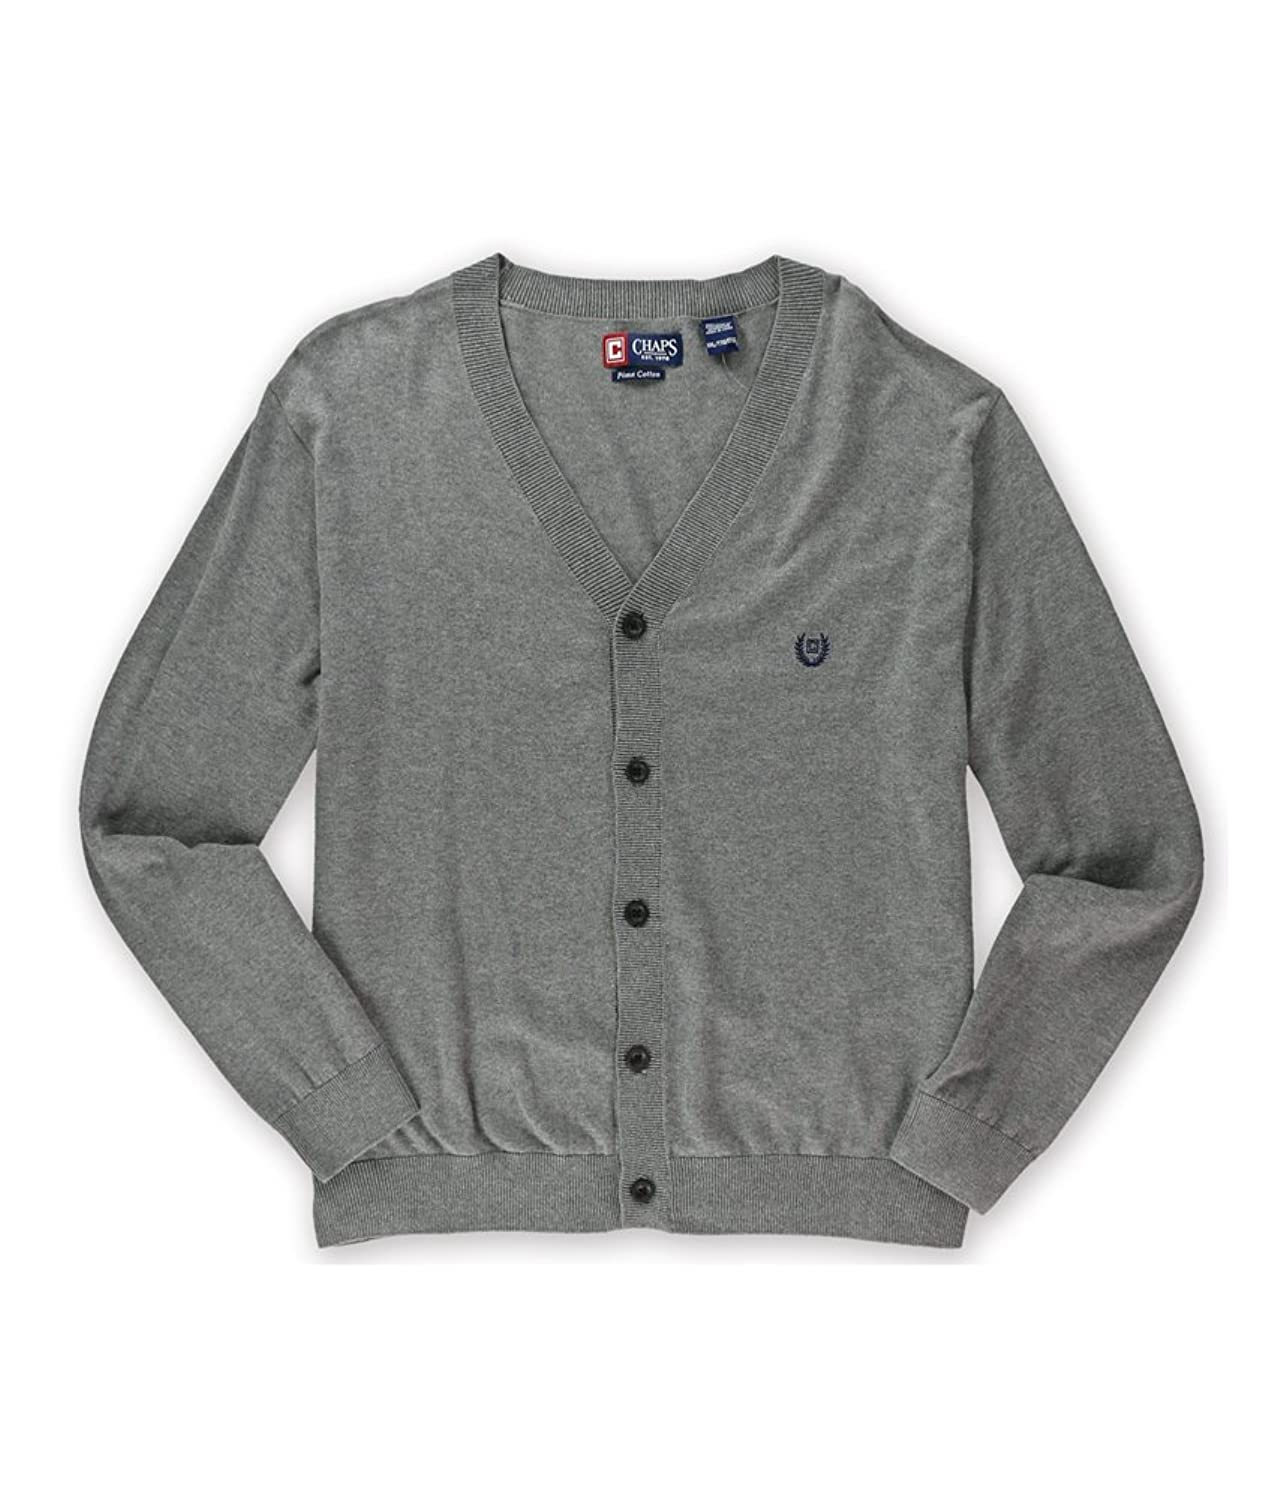 Chaps Mens Pima Cotton Logo Cardigan Sweater